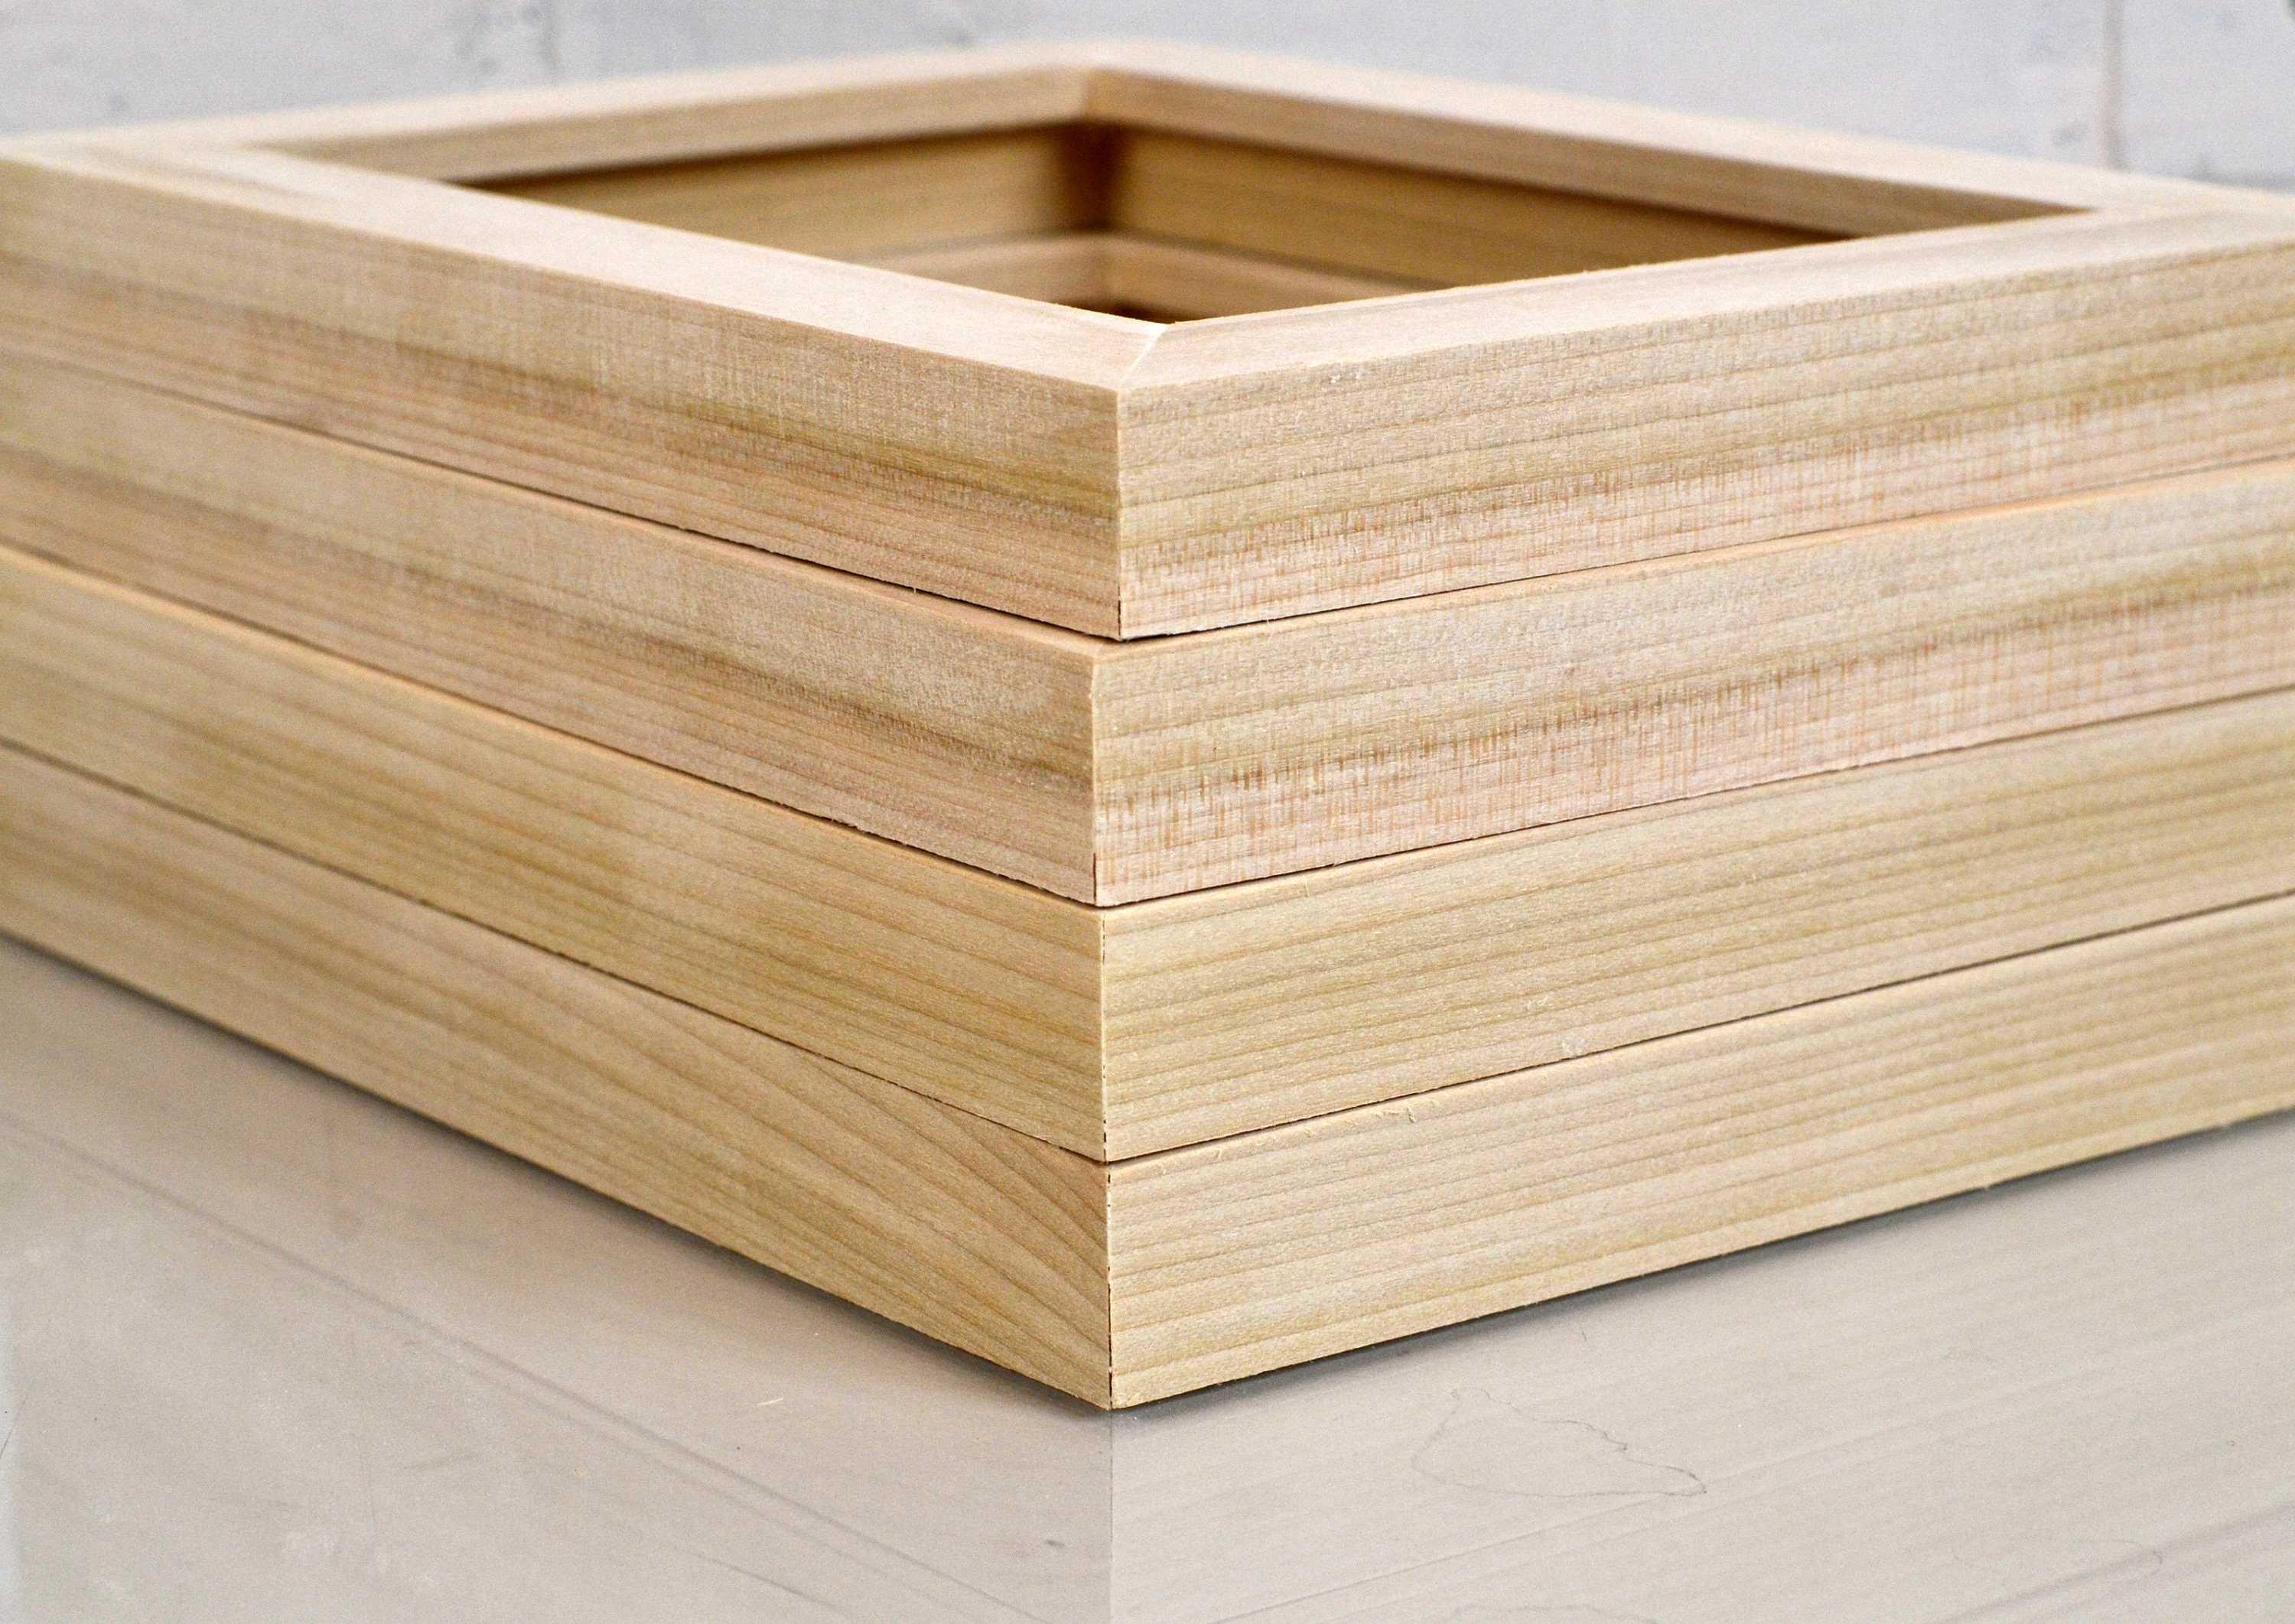 Blank Picture Frames for Artists - 1x1 Flat Natural Poplar Style